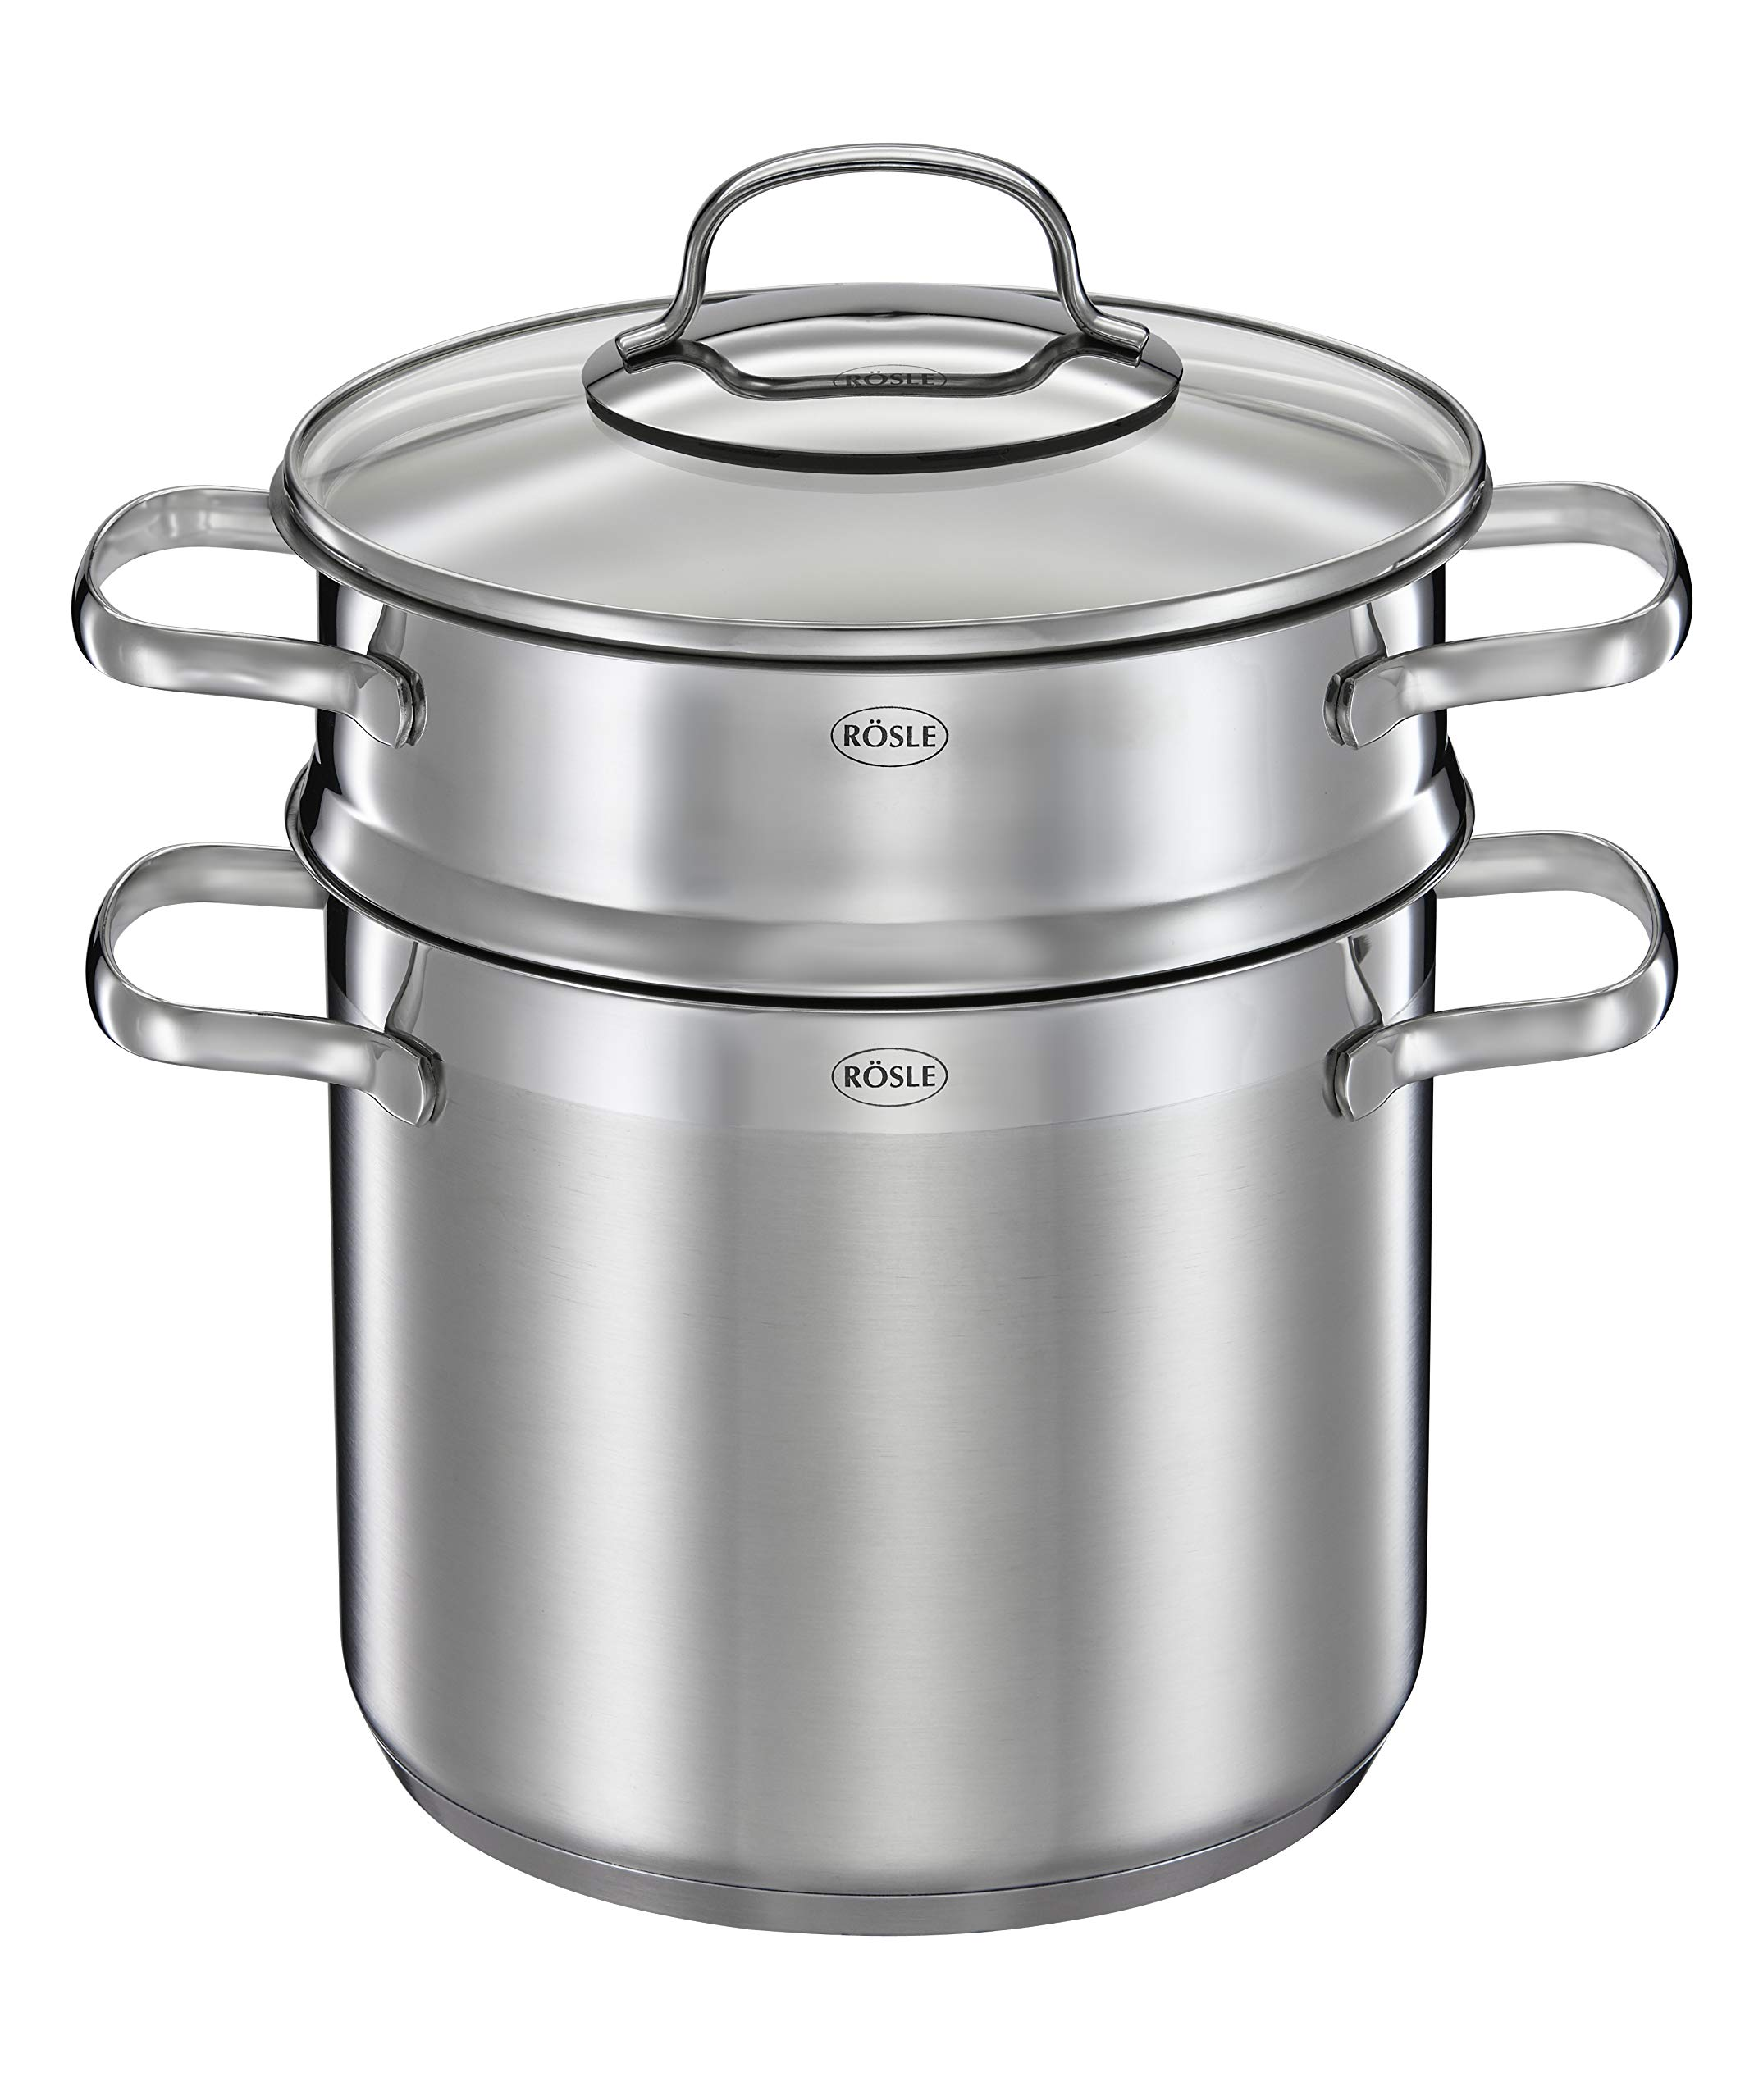 Rosle Stainless Steel Pasta Pot with Glass Lid, One Size